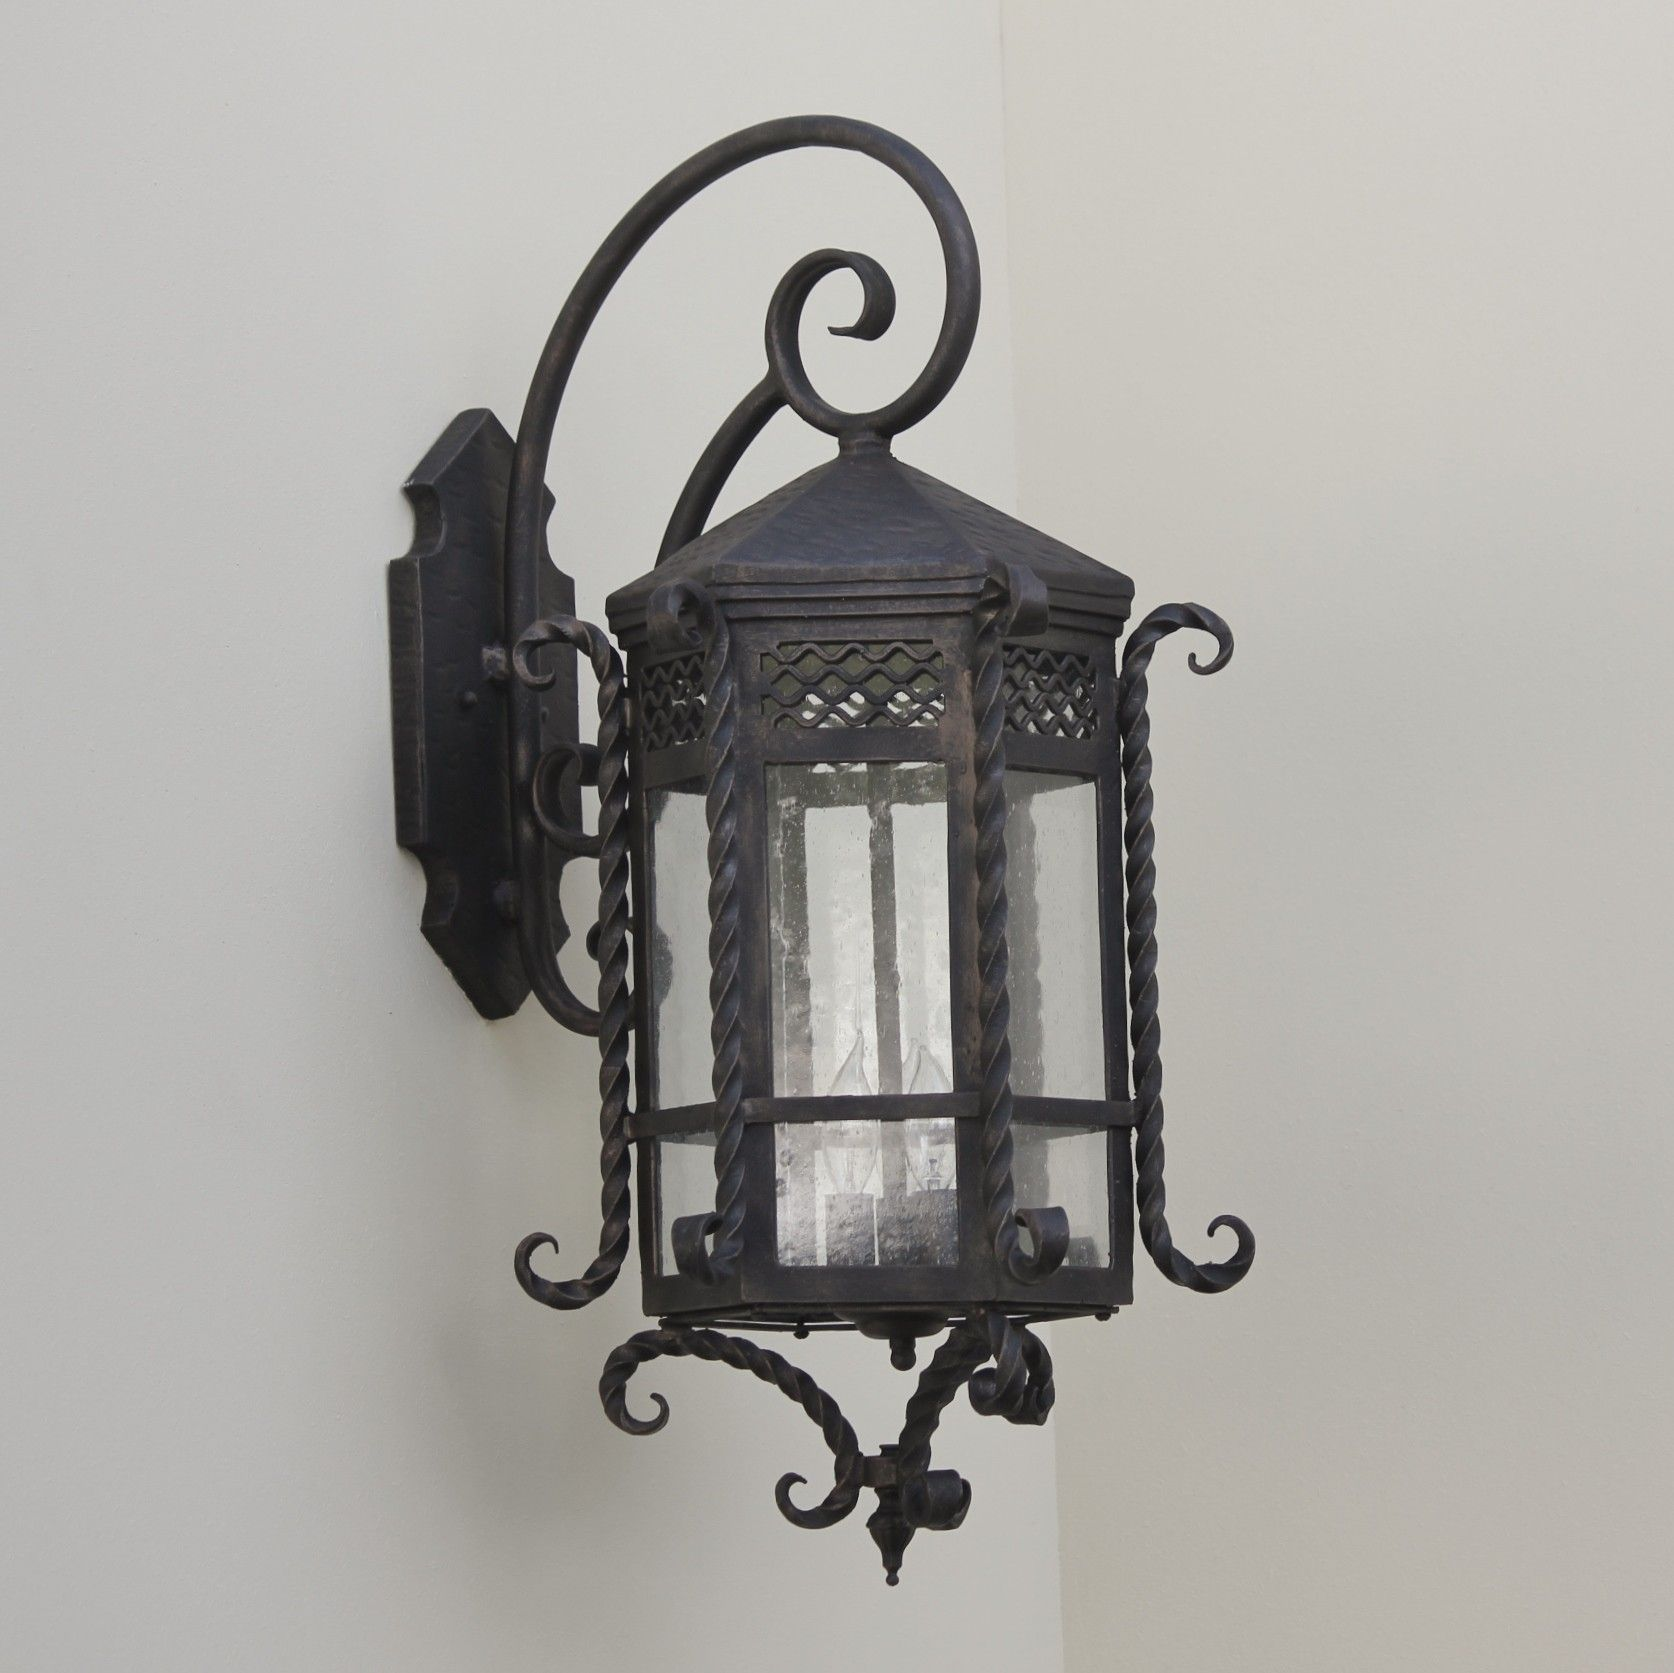 lantern style outdoor lights oversized outdoor wall spanish style outdoor lighting fixture lightsoftuscanycom